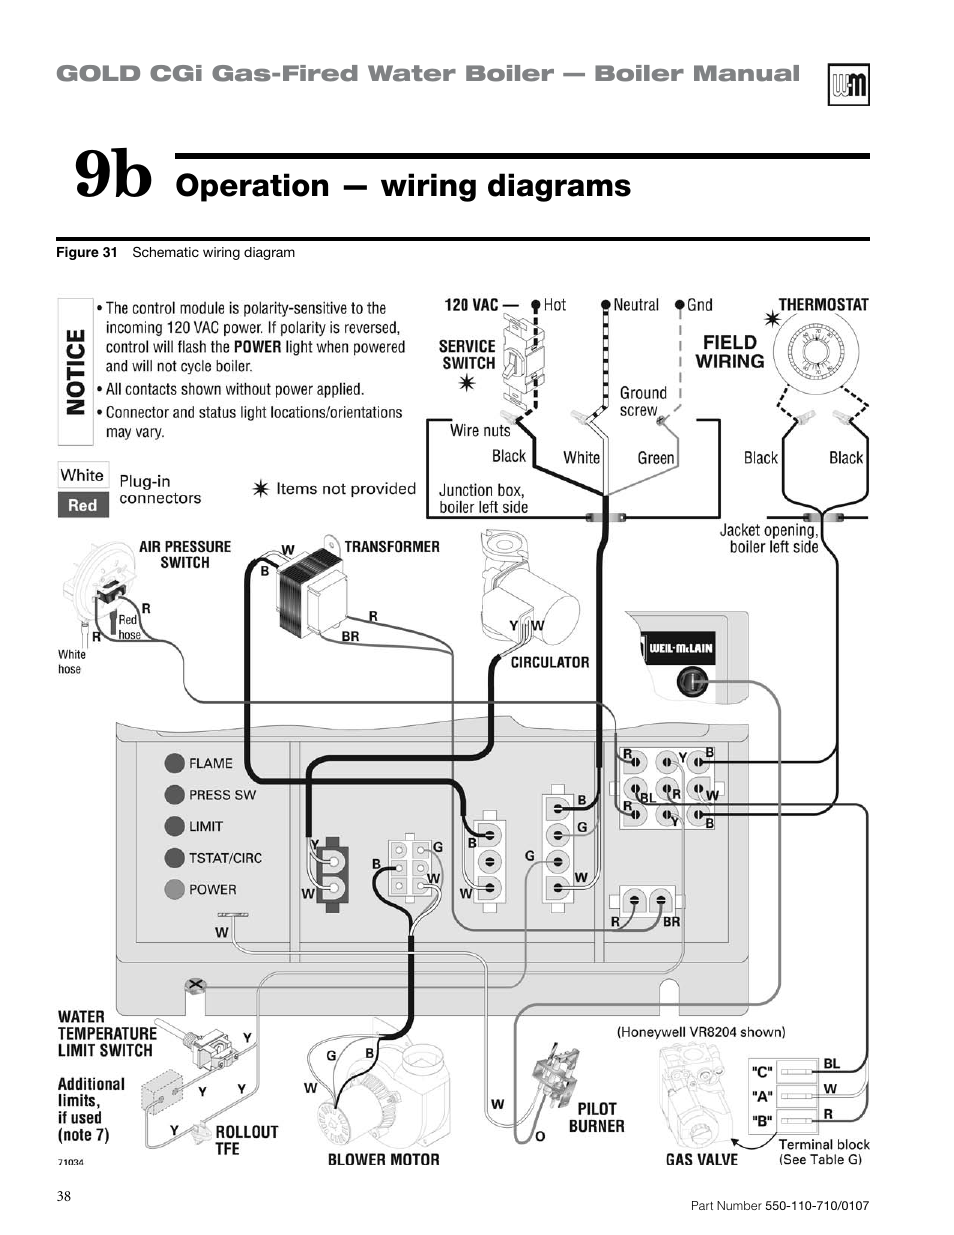 Operation  U2014 Wiring Diagrams